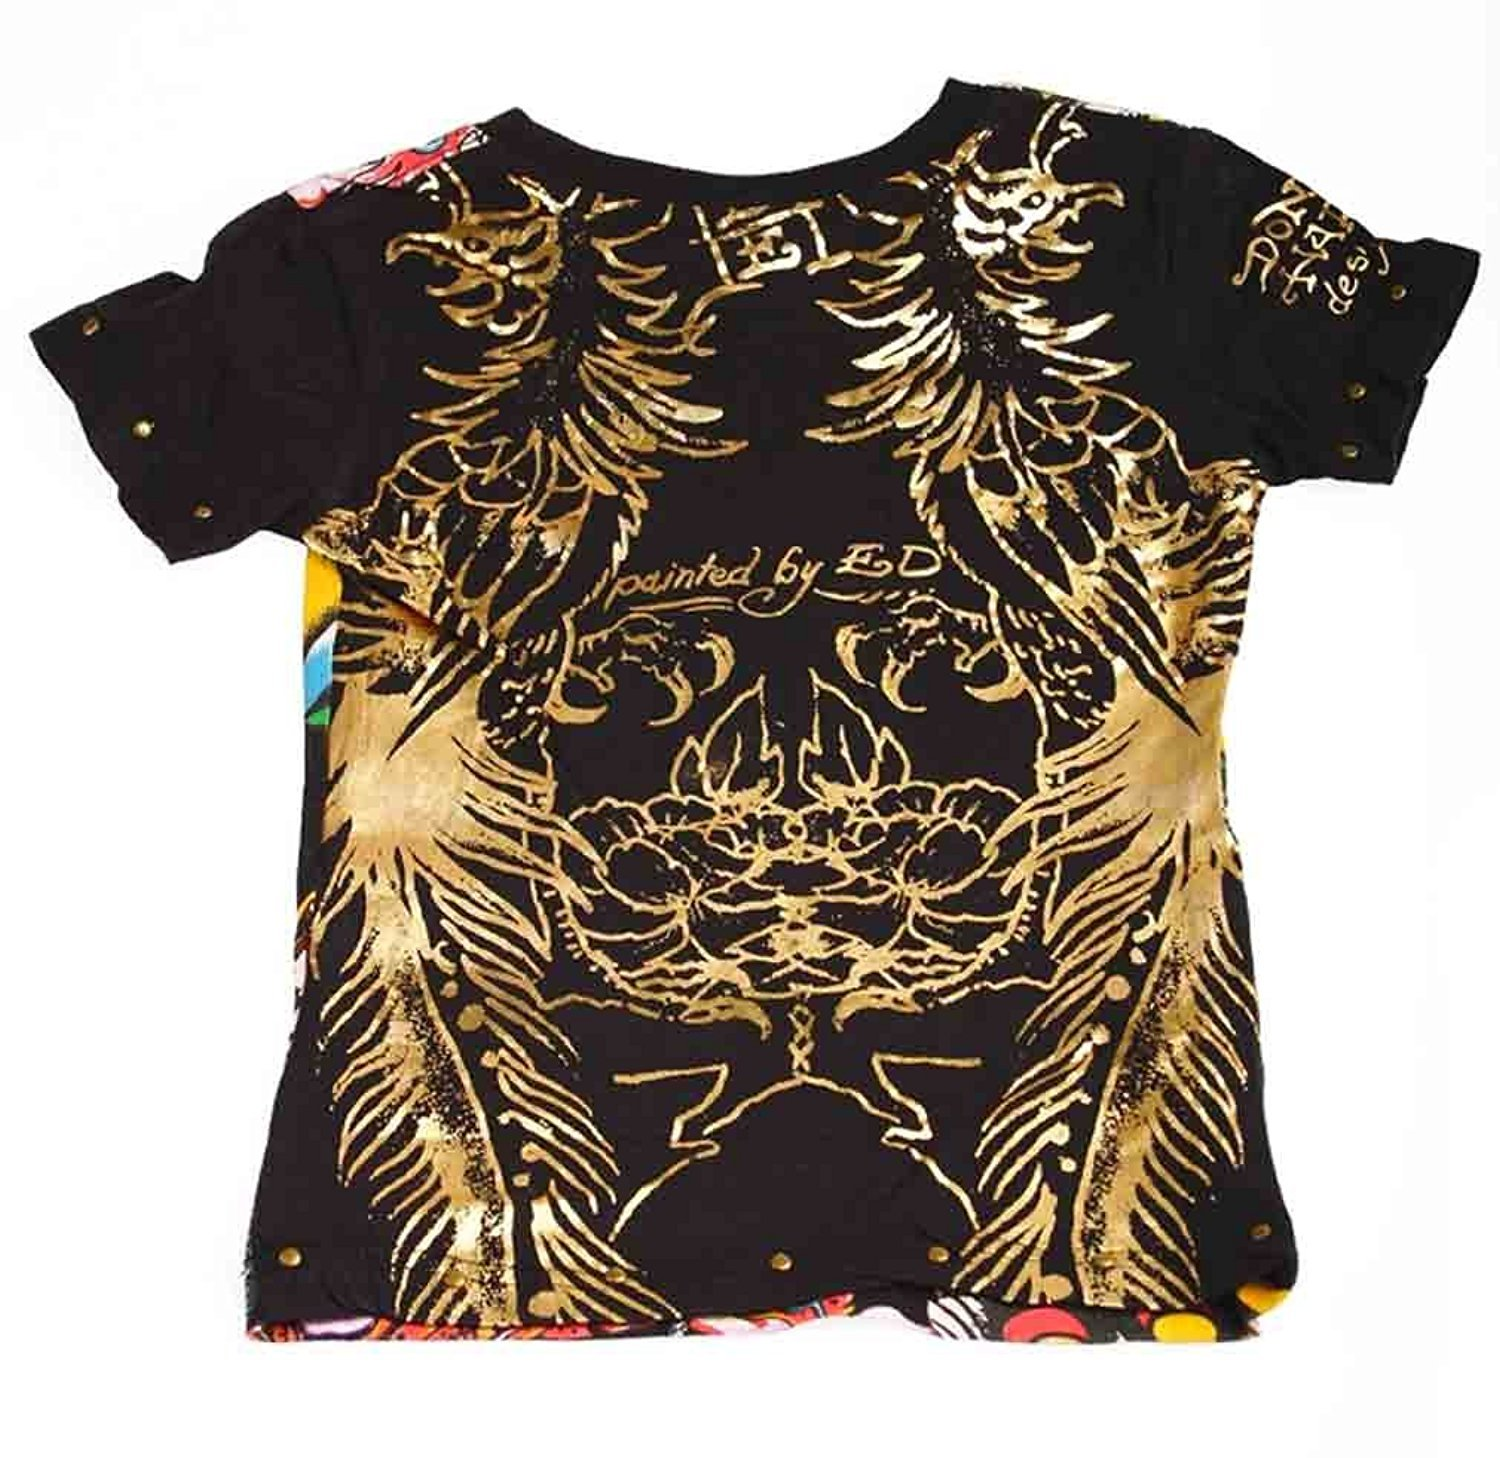 Image 1 of Ed Hardy Girls Black Tee Shirt W/birds Flowers Motif, Short Sleeve